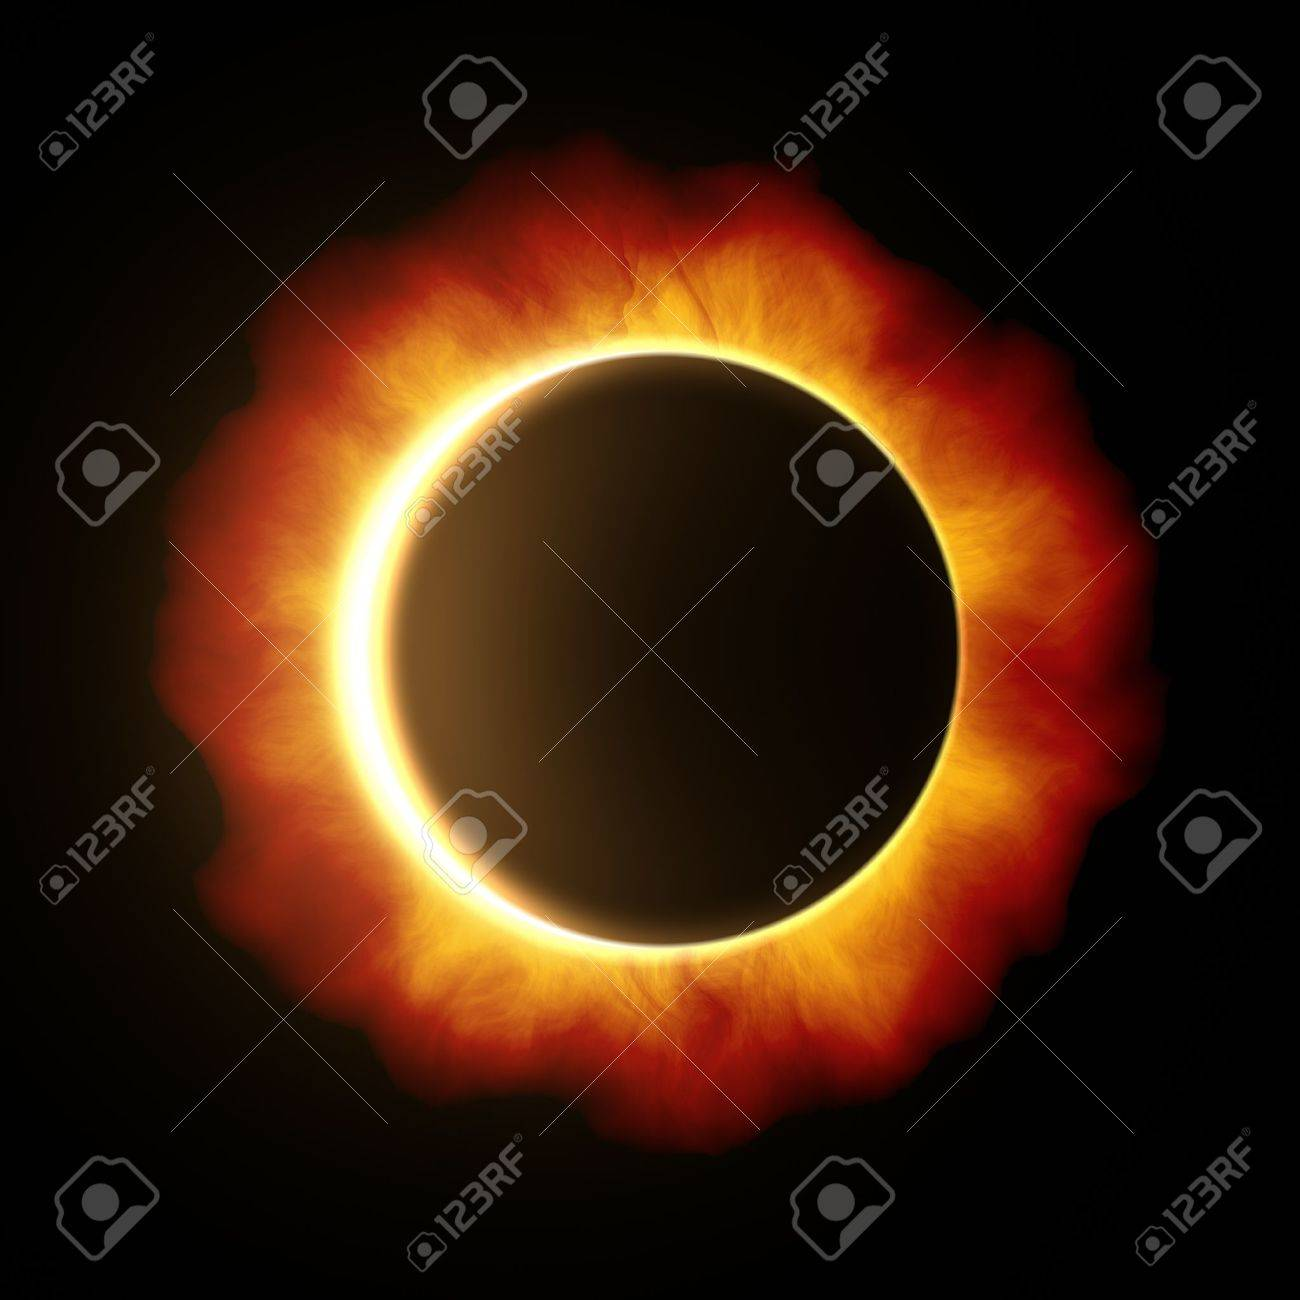 An image of a beautiful sun eclipse Stock Photo - 19469673